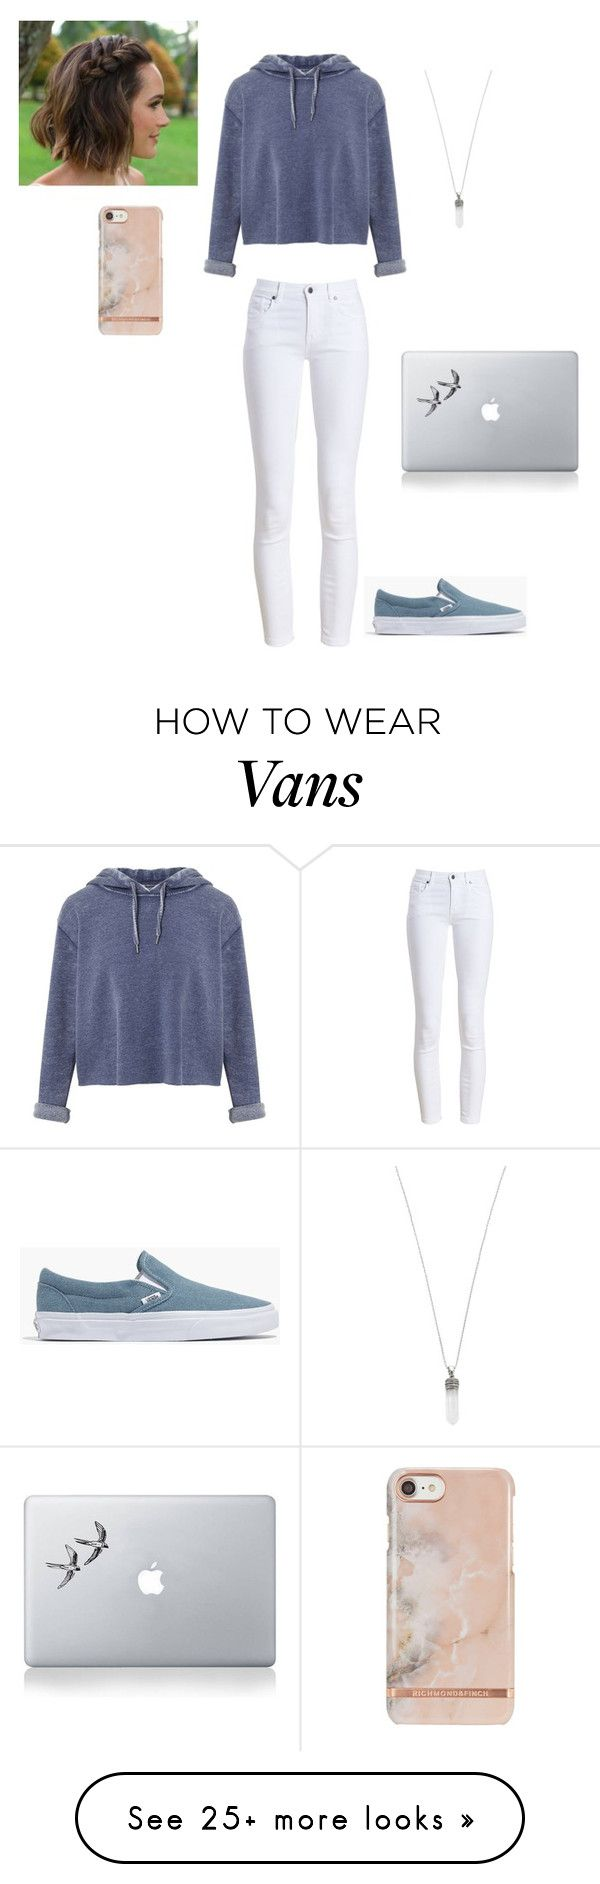 """Saturday 13th May, 2017."" by jalissaj on Polyvore featuring Miss Selfridge, Barbour, Madewell, Marc Jacobs and Vinyl Revolution"